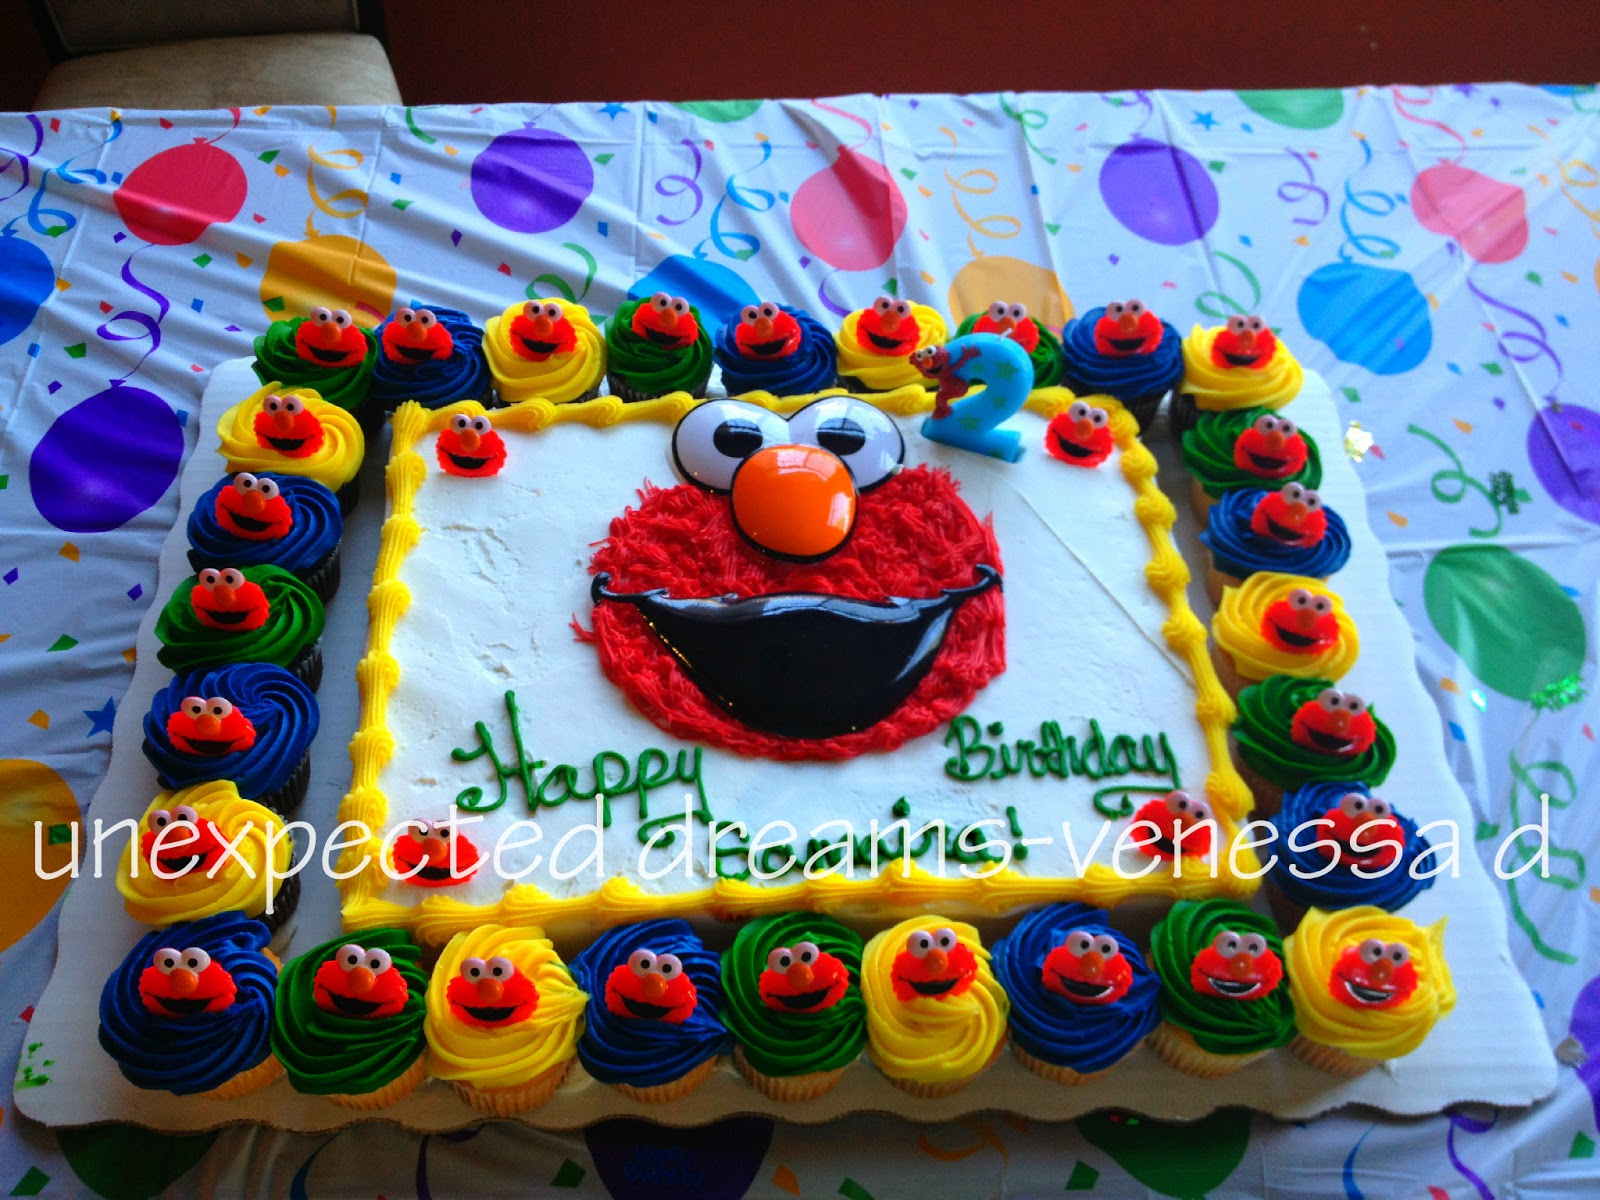 My Little Pony Birthday Cake Sams Club Image Inspiration of Cake